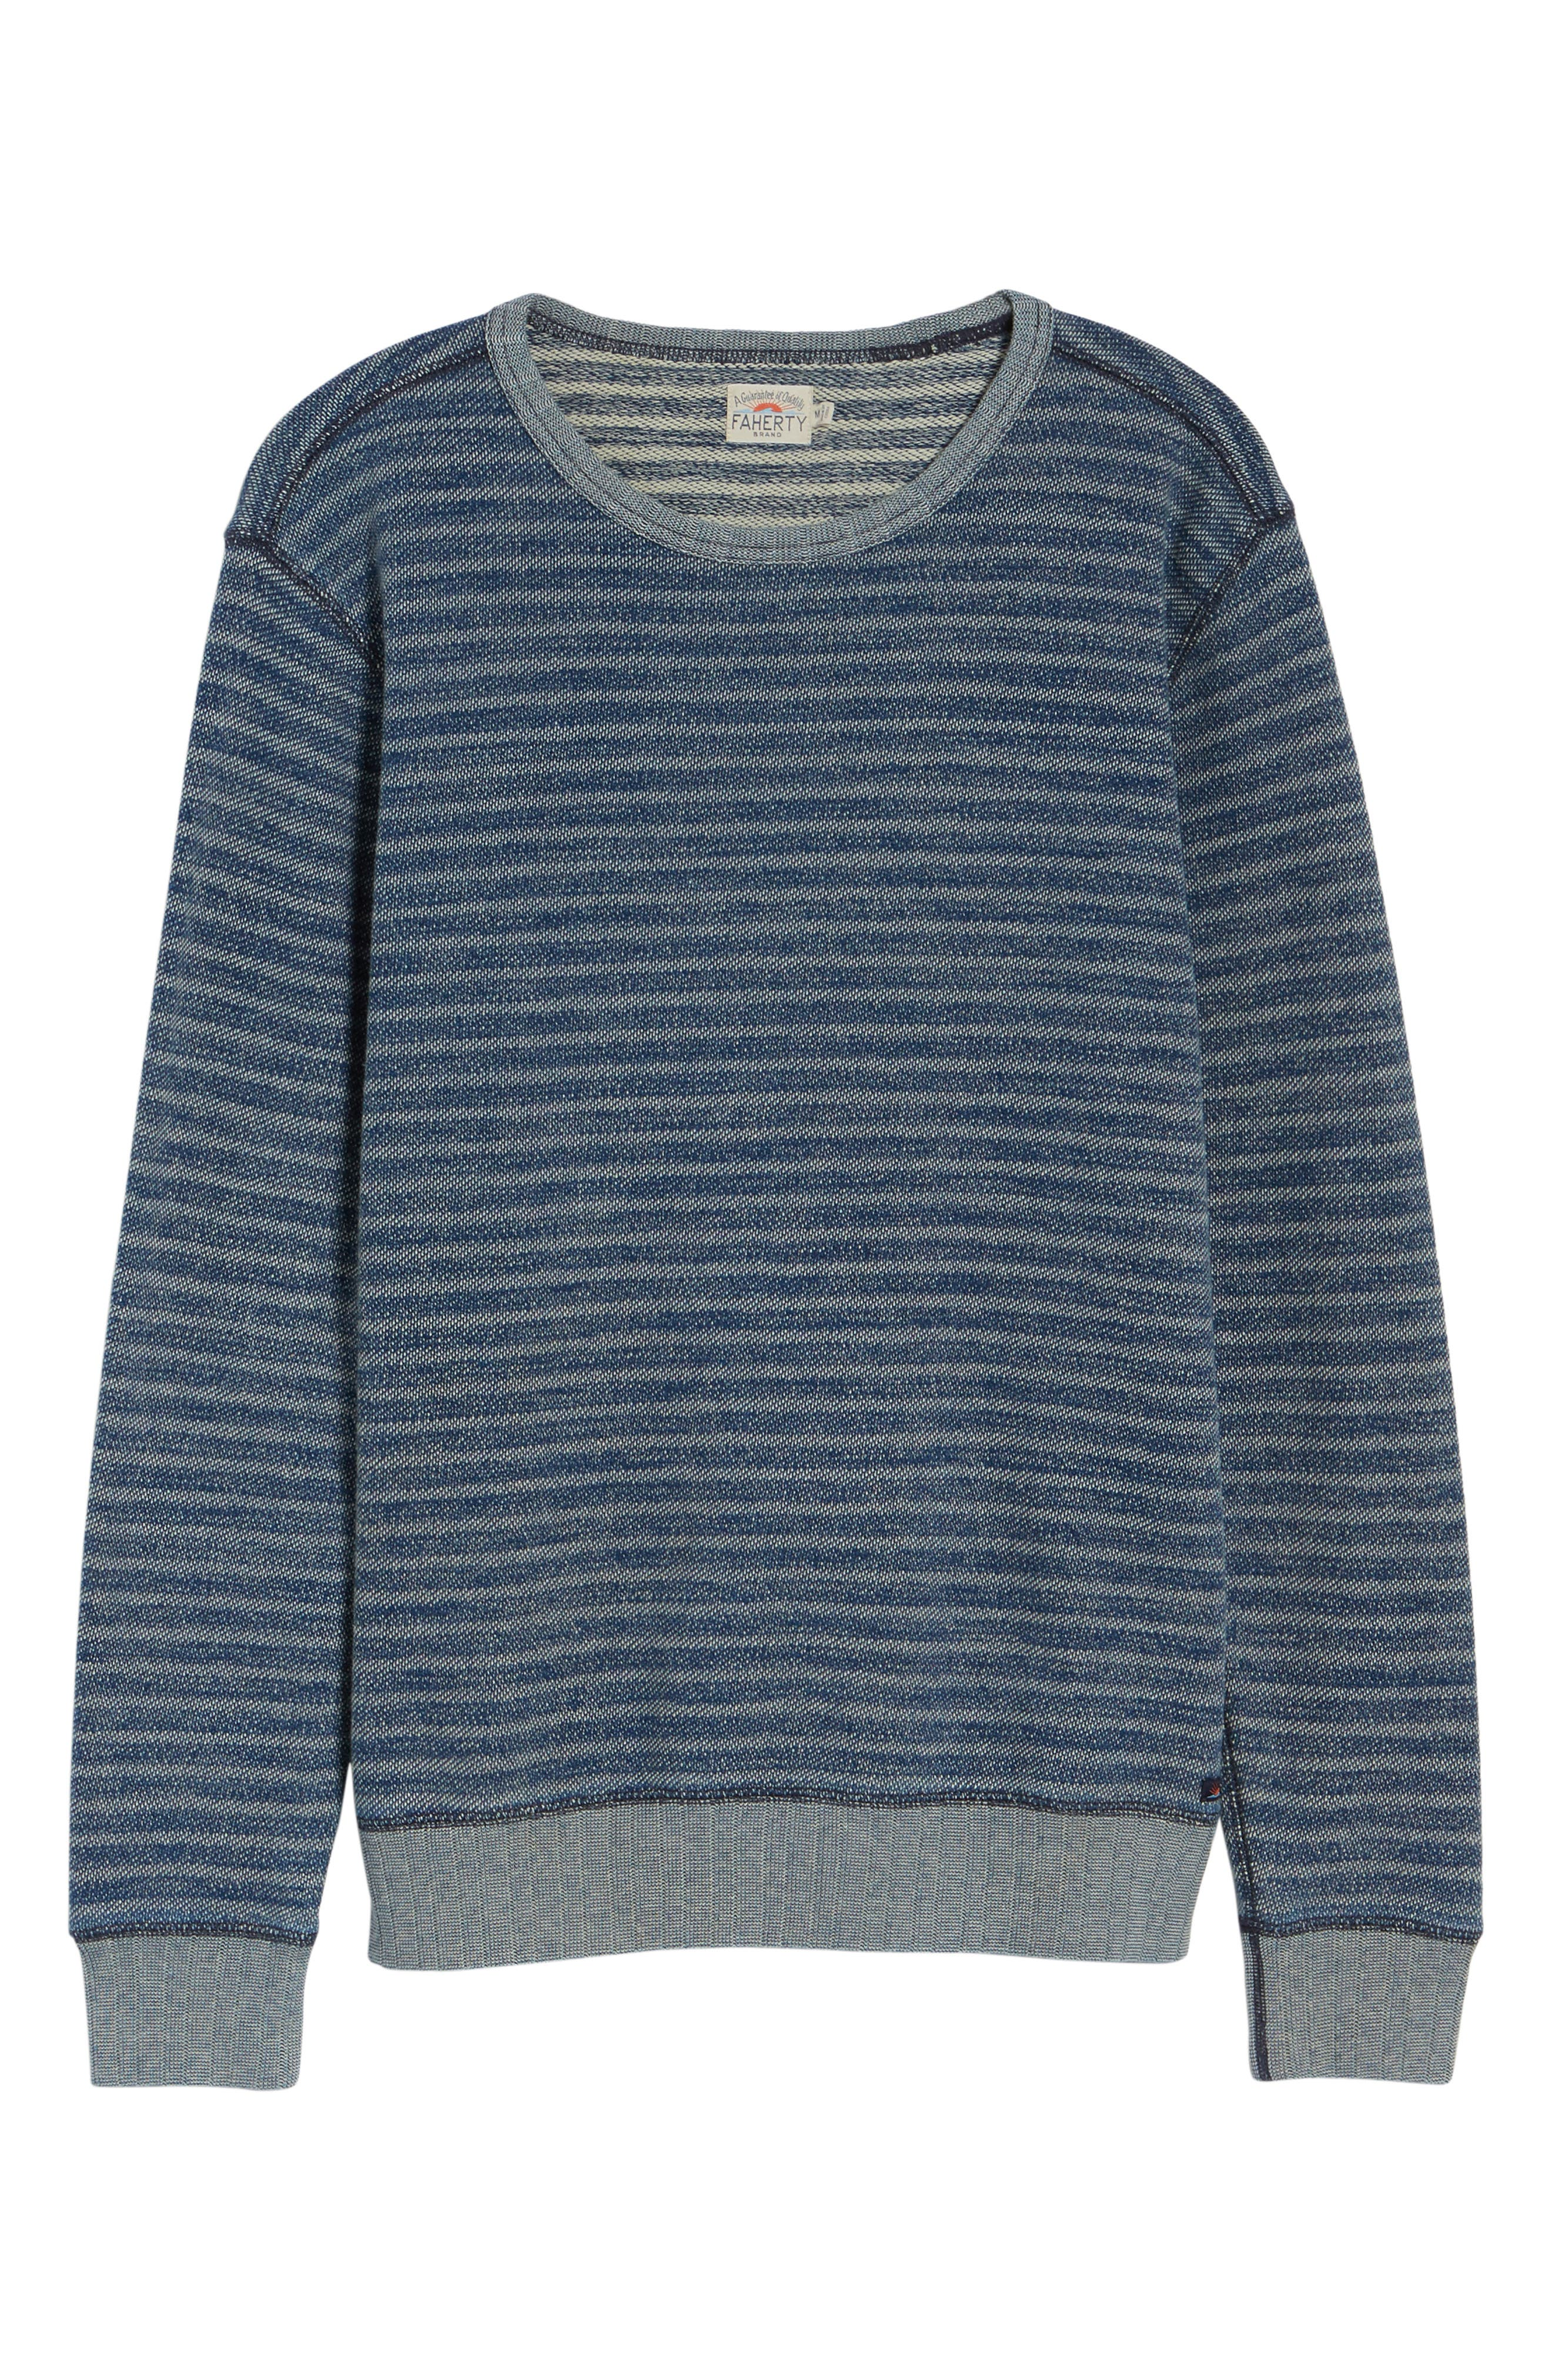 Stripe Crewneck Sweatshirt,                             Alternate thumbnail 6, color,                             402